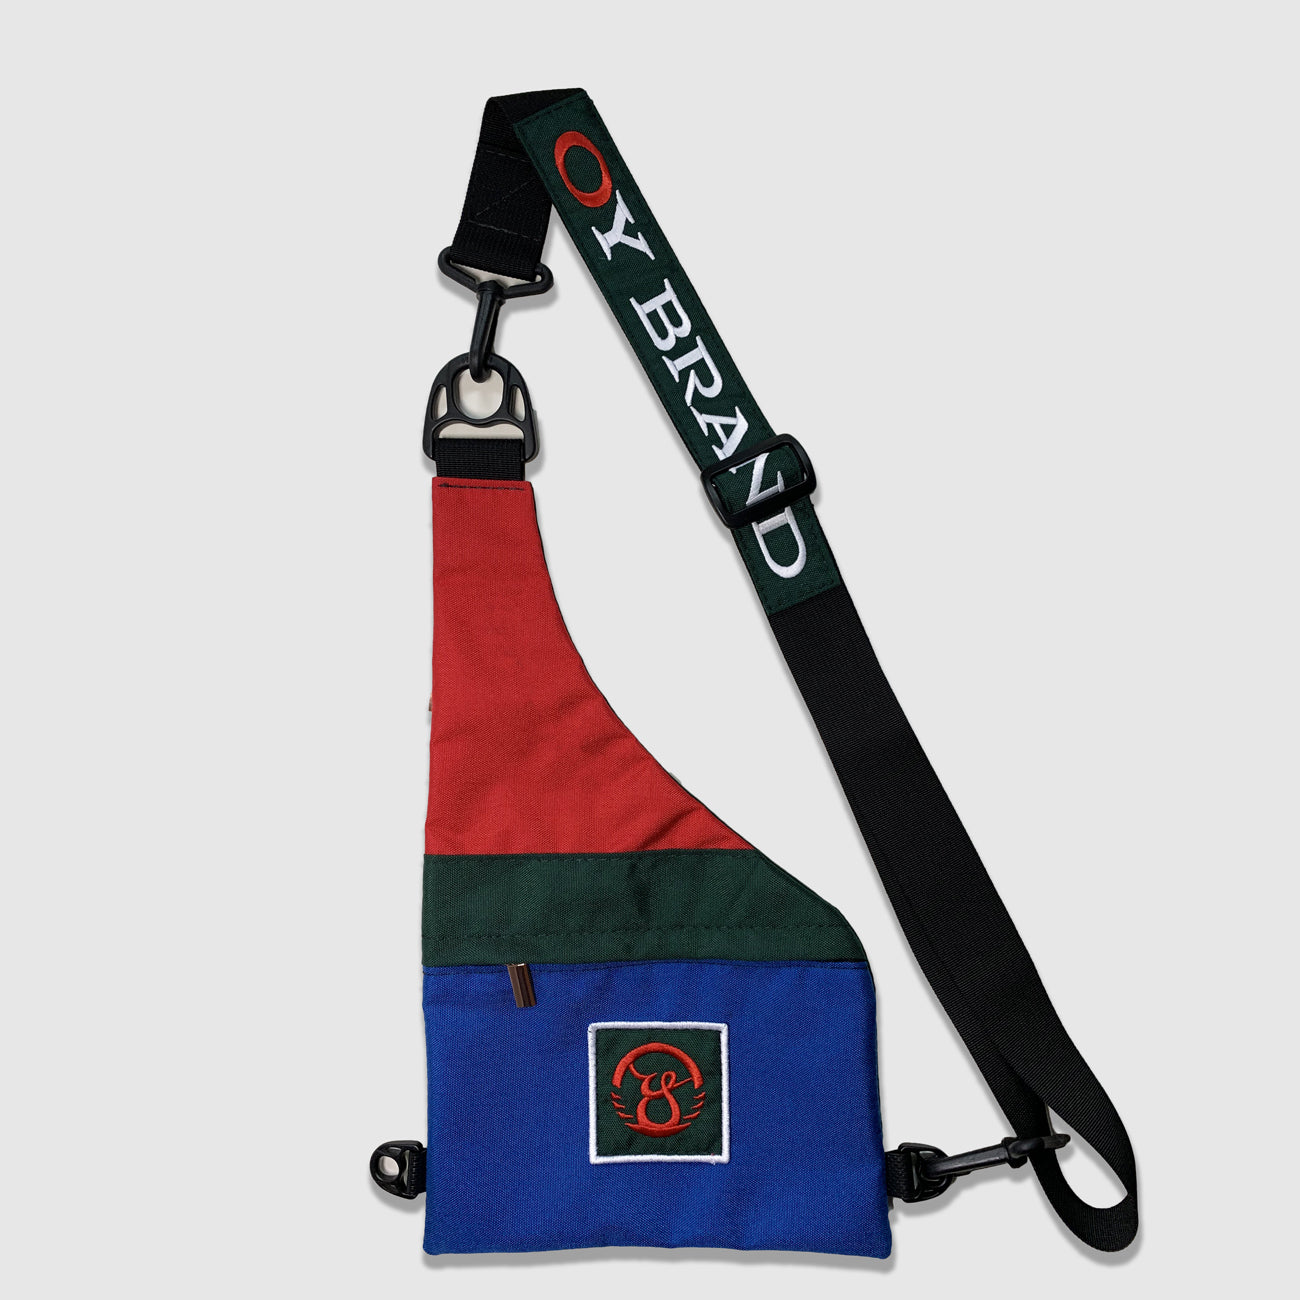 Oy brand multi colored cross body bag